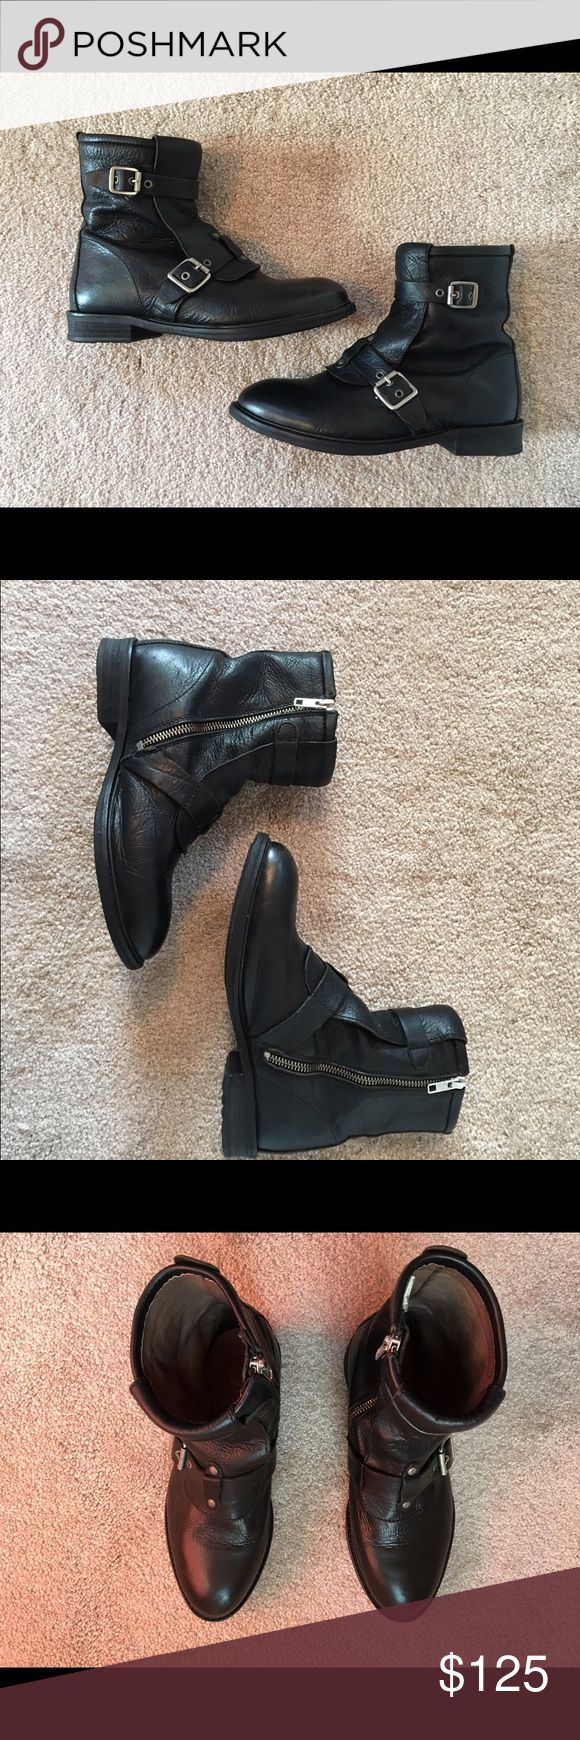 Hudson Shoes distressed ankle boots Hudson Shoes black distressed biker boot. Side zip, adjustable front and ankle buckles. Only worn approximately 5 times. Looks great with skinny jeans! H By Hudson Shoes Ankle Boots & Booties